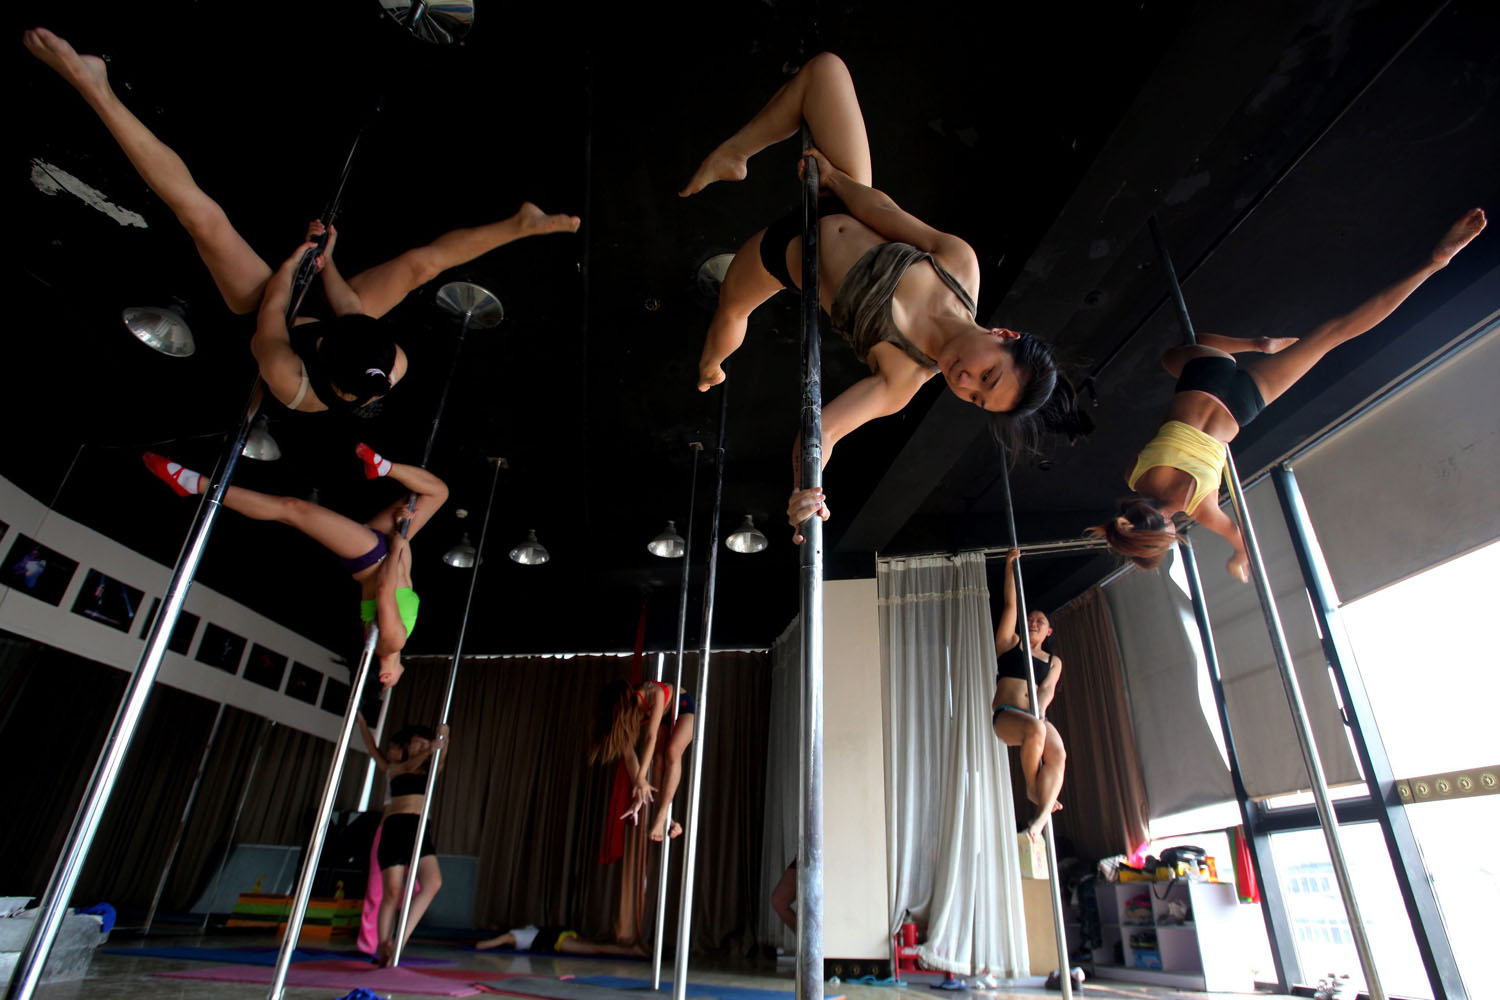 Oct. 8, 2013. Dancers perform during a training session at the pole dancing school in Tianjin city, China.